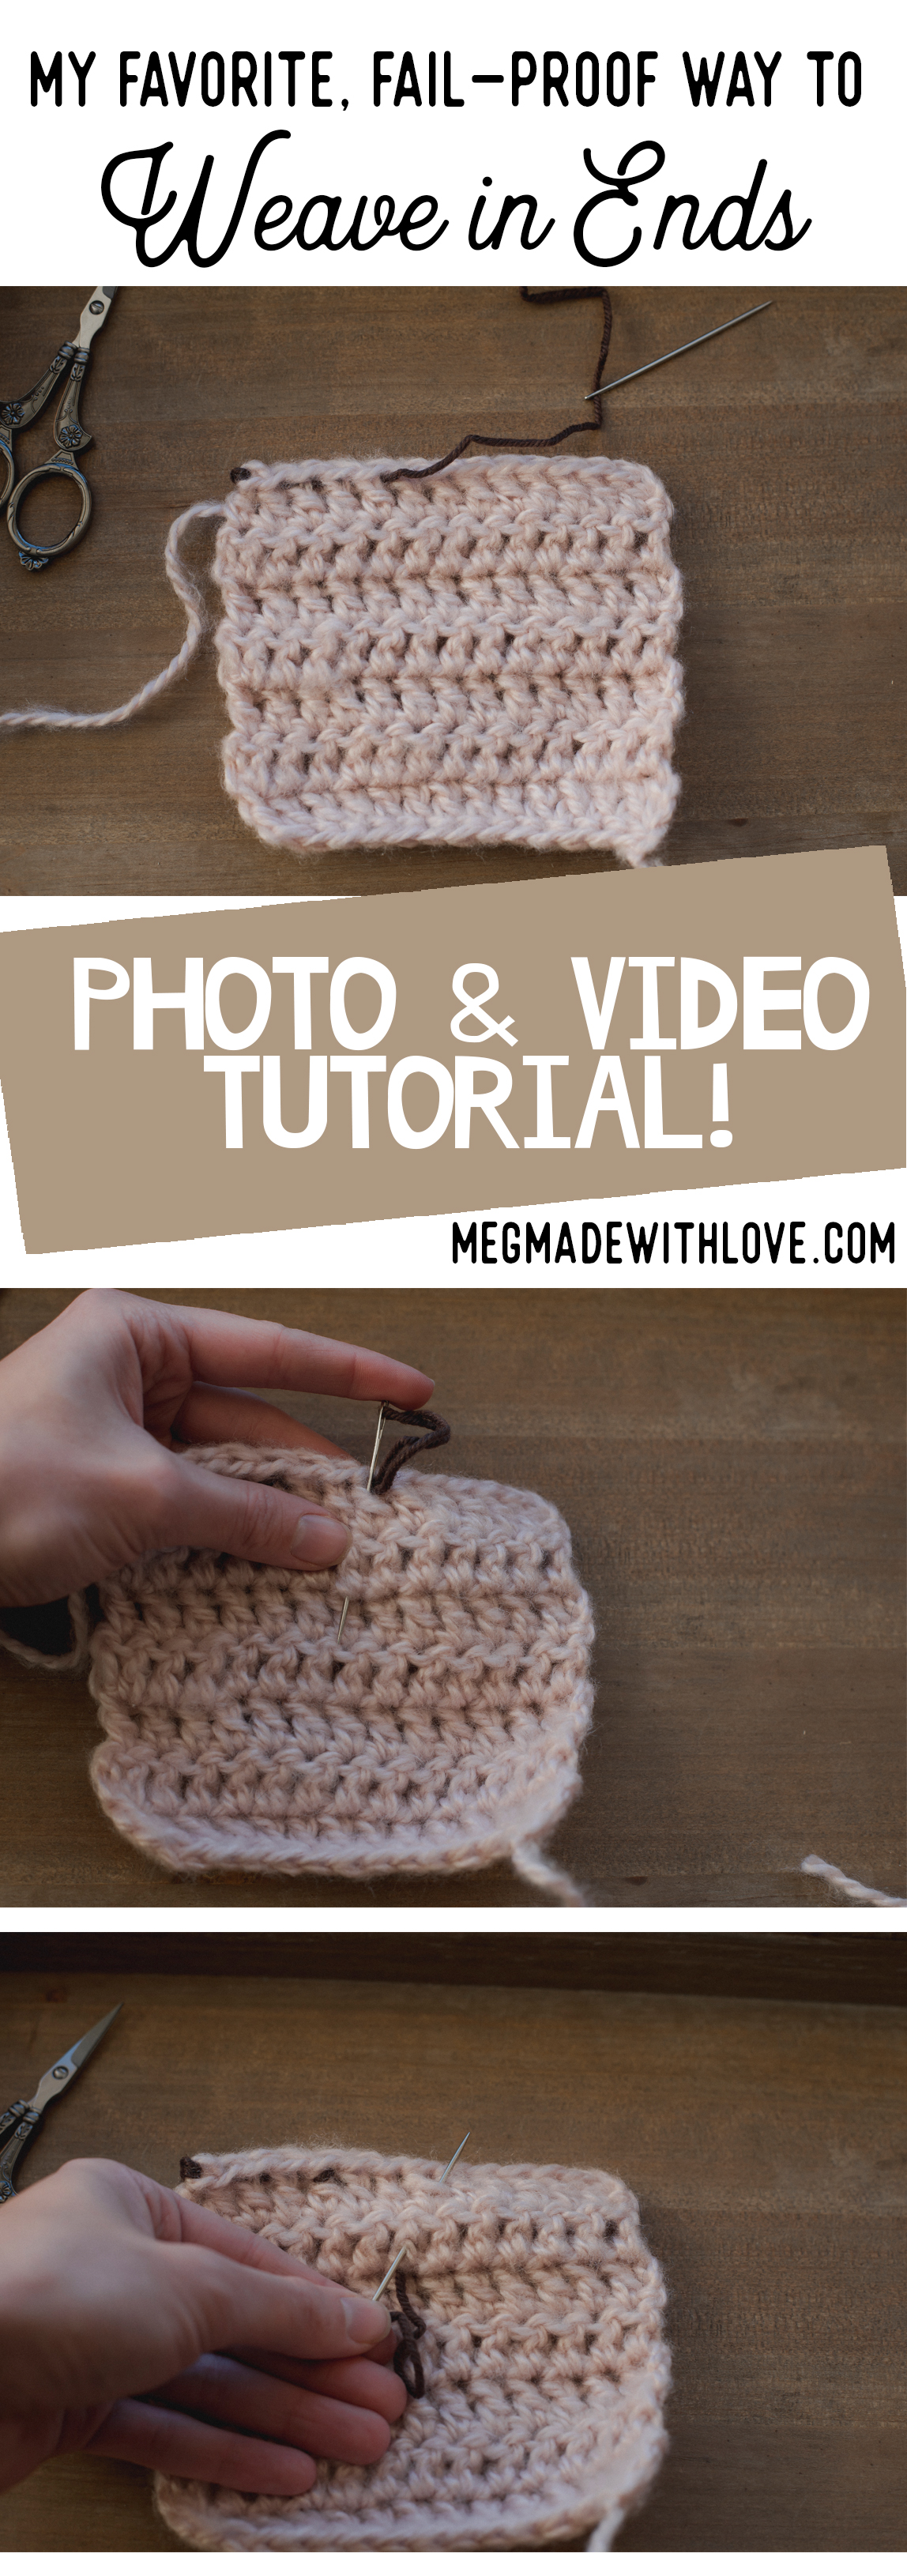 My Favorite, Fail-Proof Way to Weave in Ends - Megmade with Love